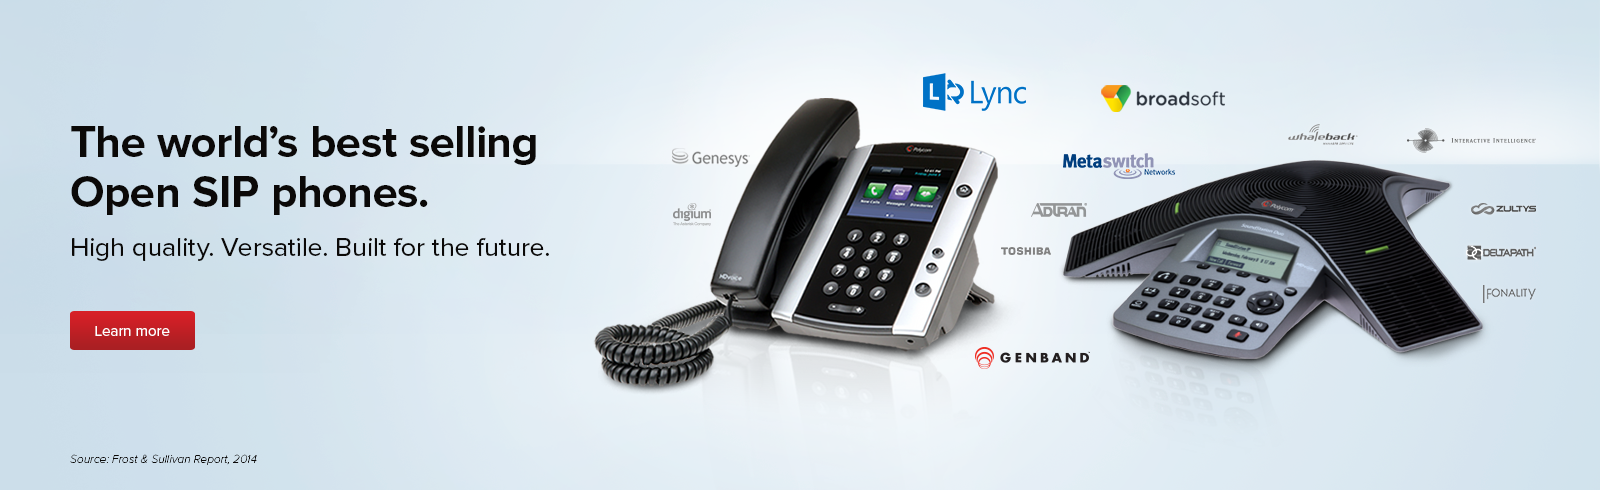 The world's best selling Open SIP phones